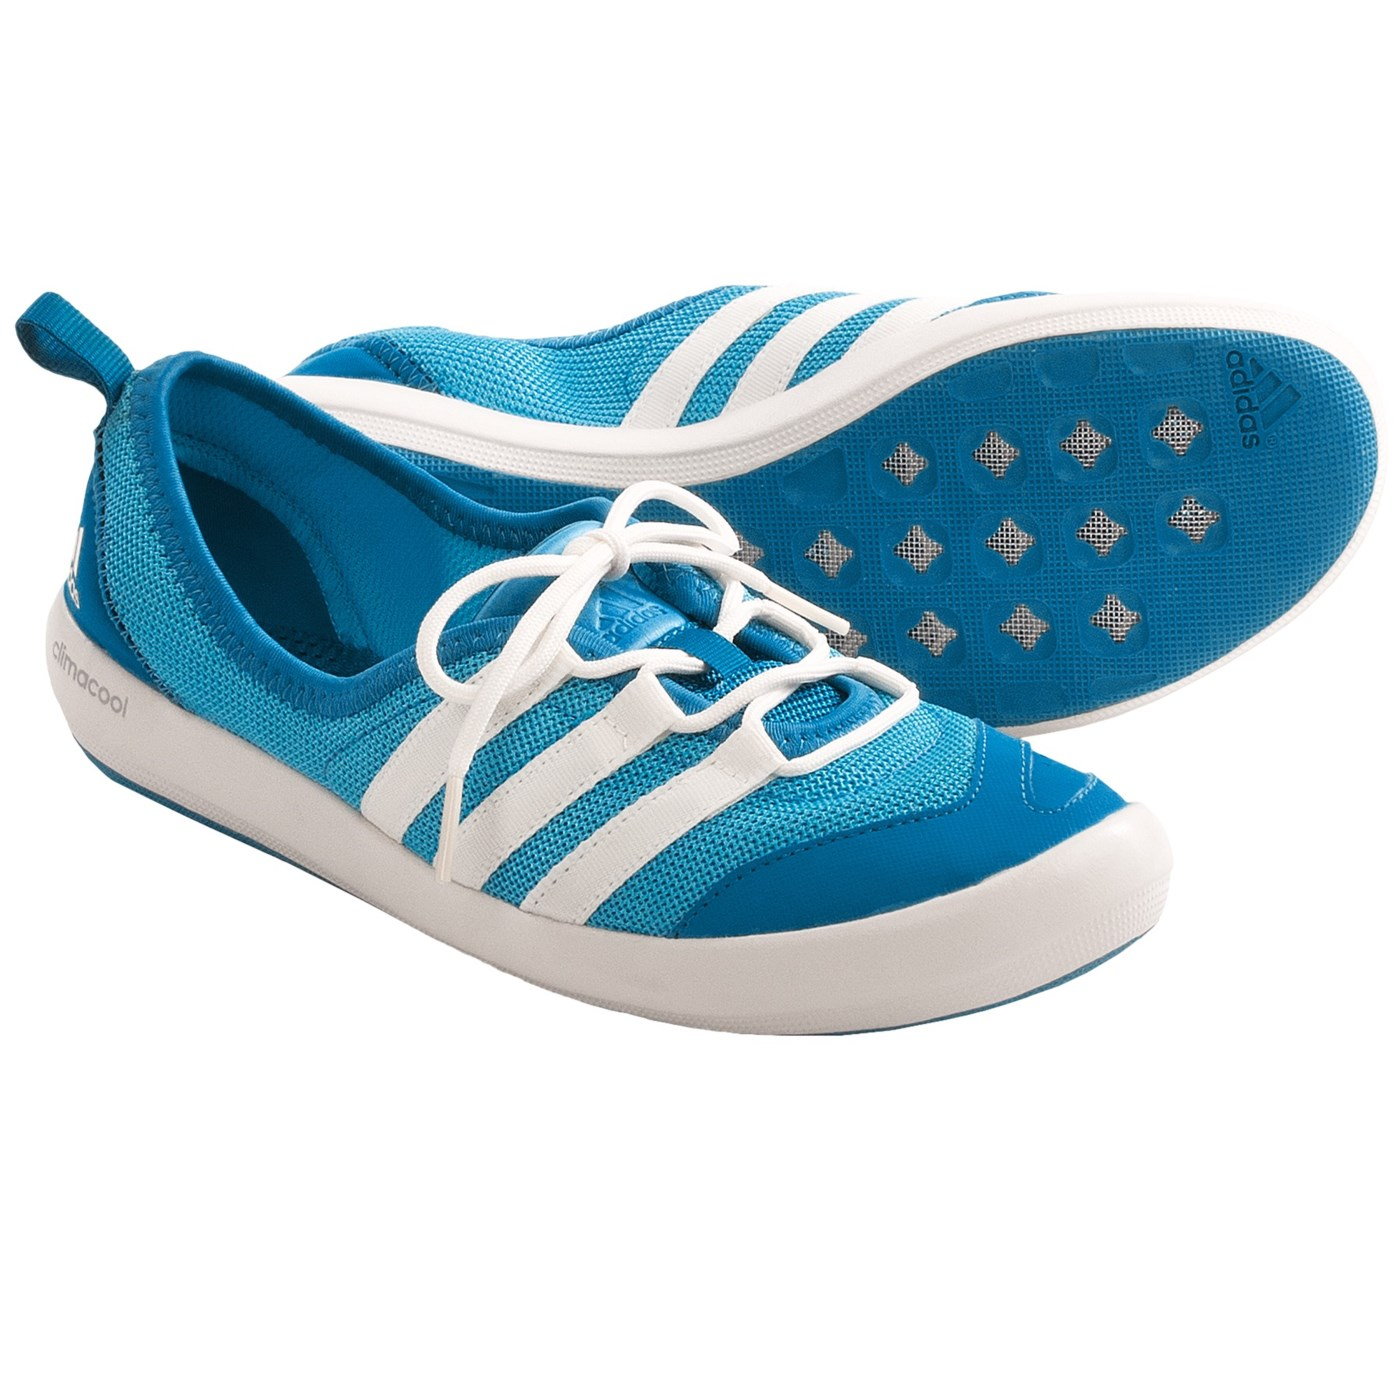 adidas outdoor Climacool Boat Sleek Water Shoes (For Women) 33 on ... 7d2d9c67ba